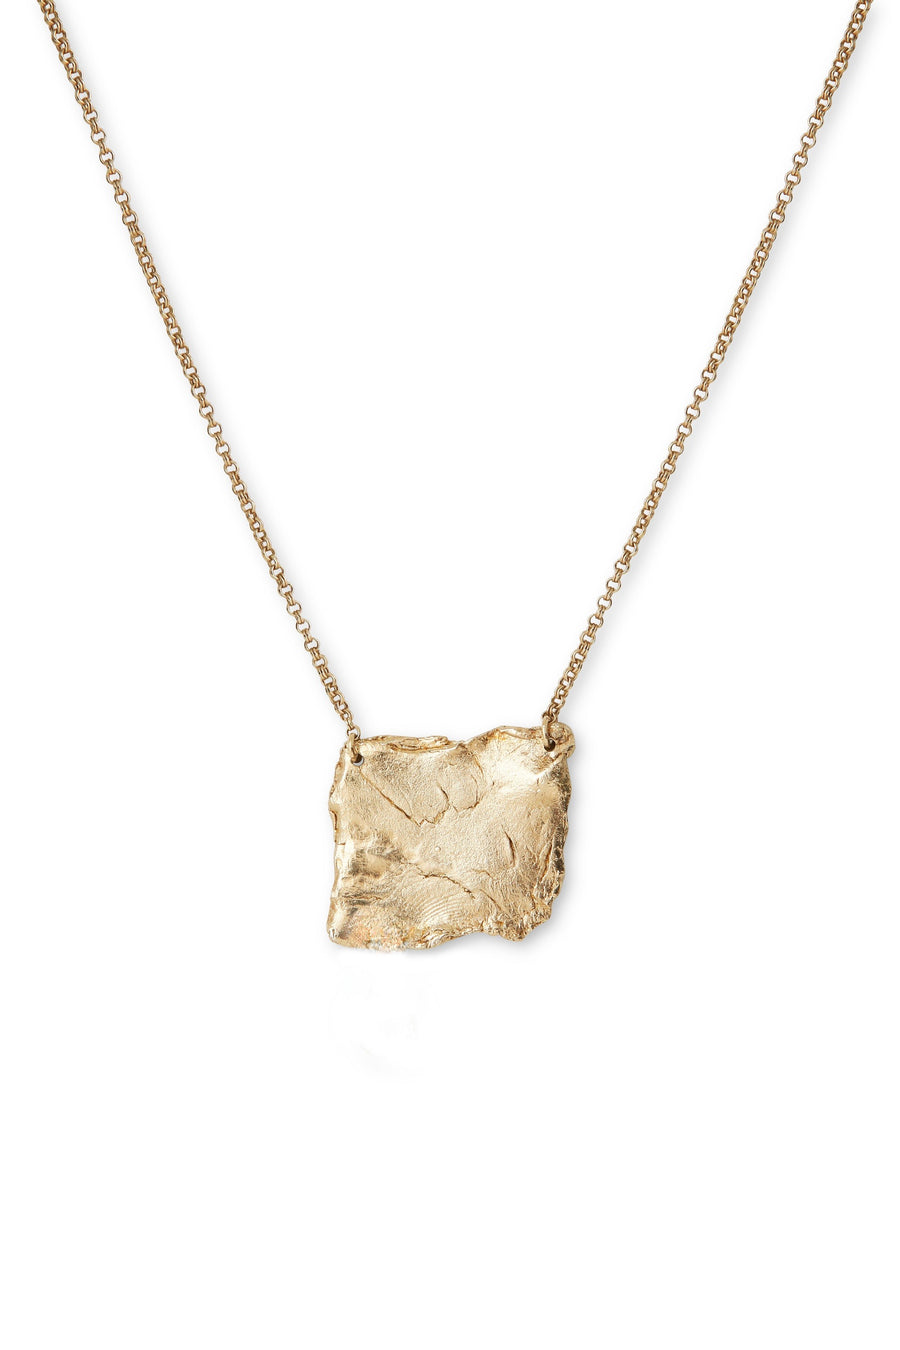 Gold Plated Fragment Necklace by Marion Fillancq - Marion Fillancq